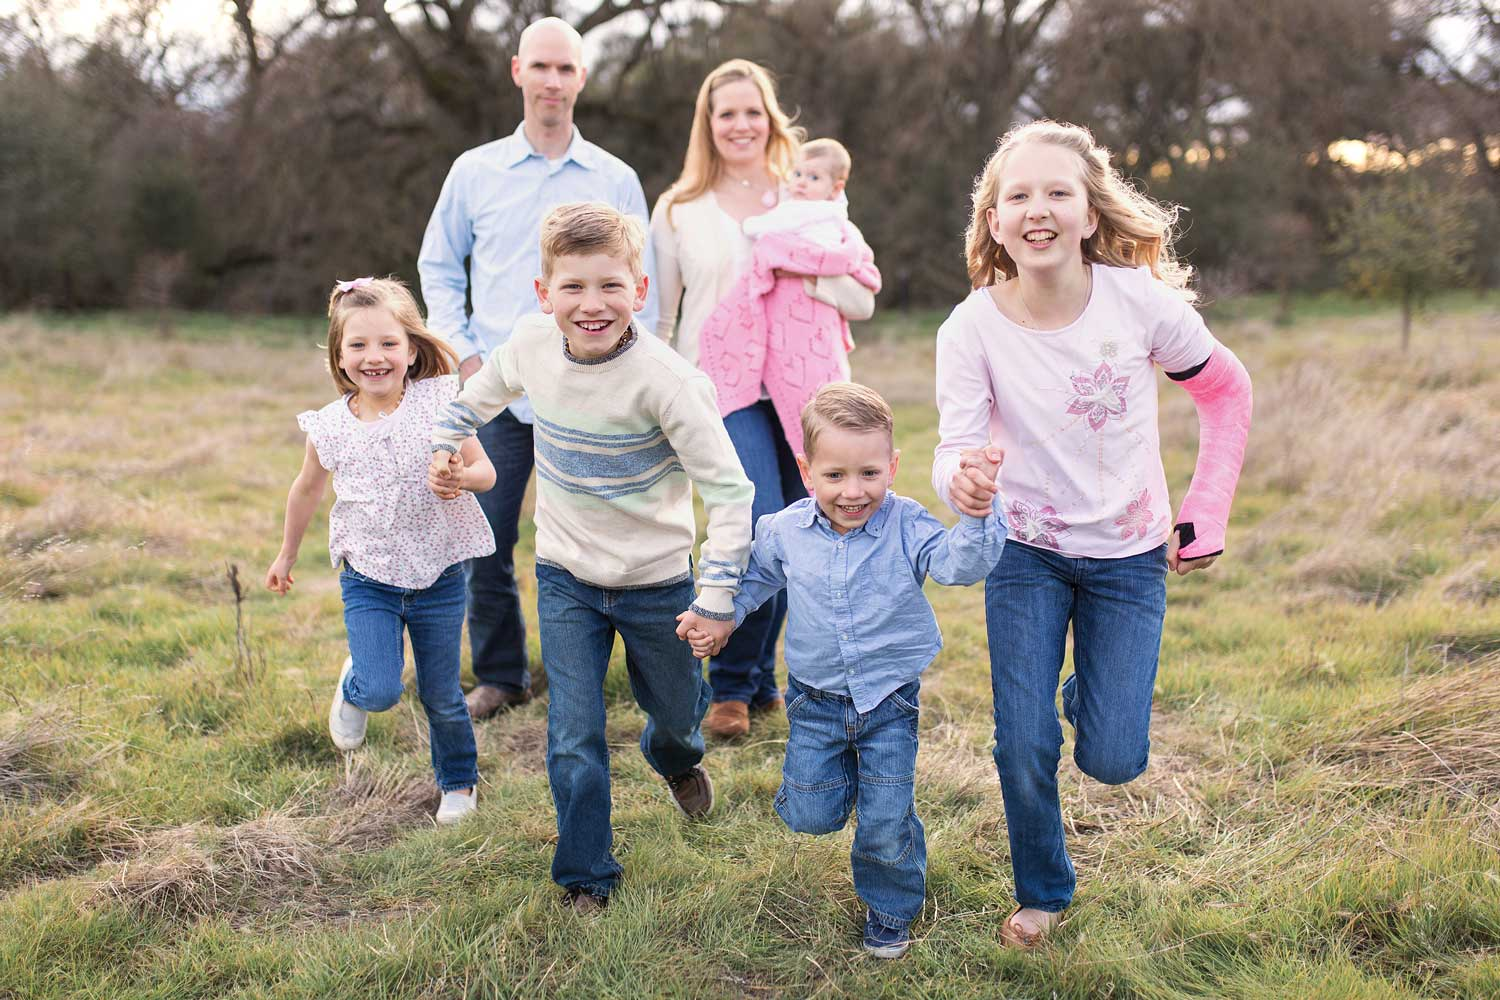 A family of six is running happily through a field in Roseville, California with Amy Wright Photography.